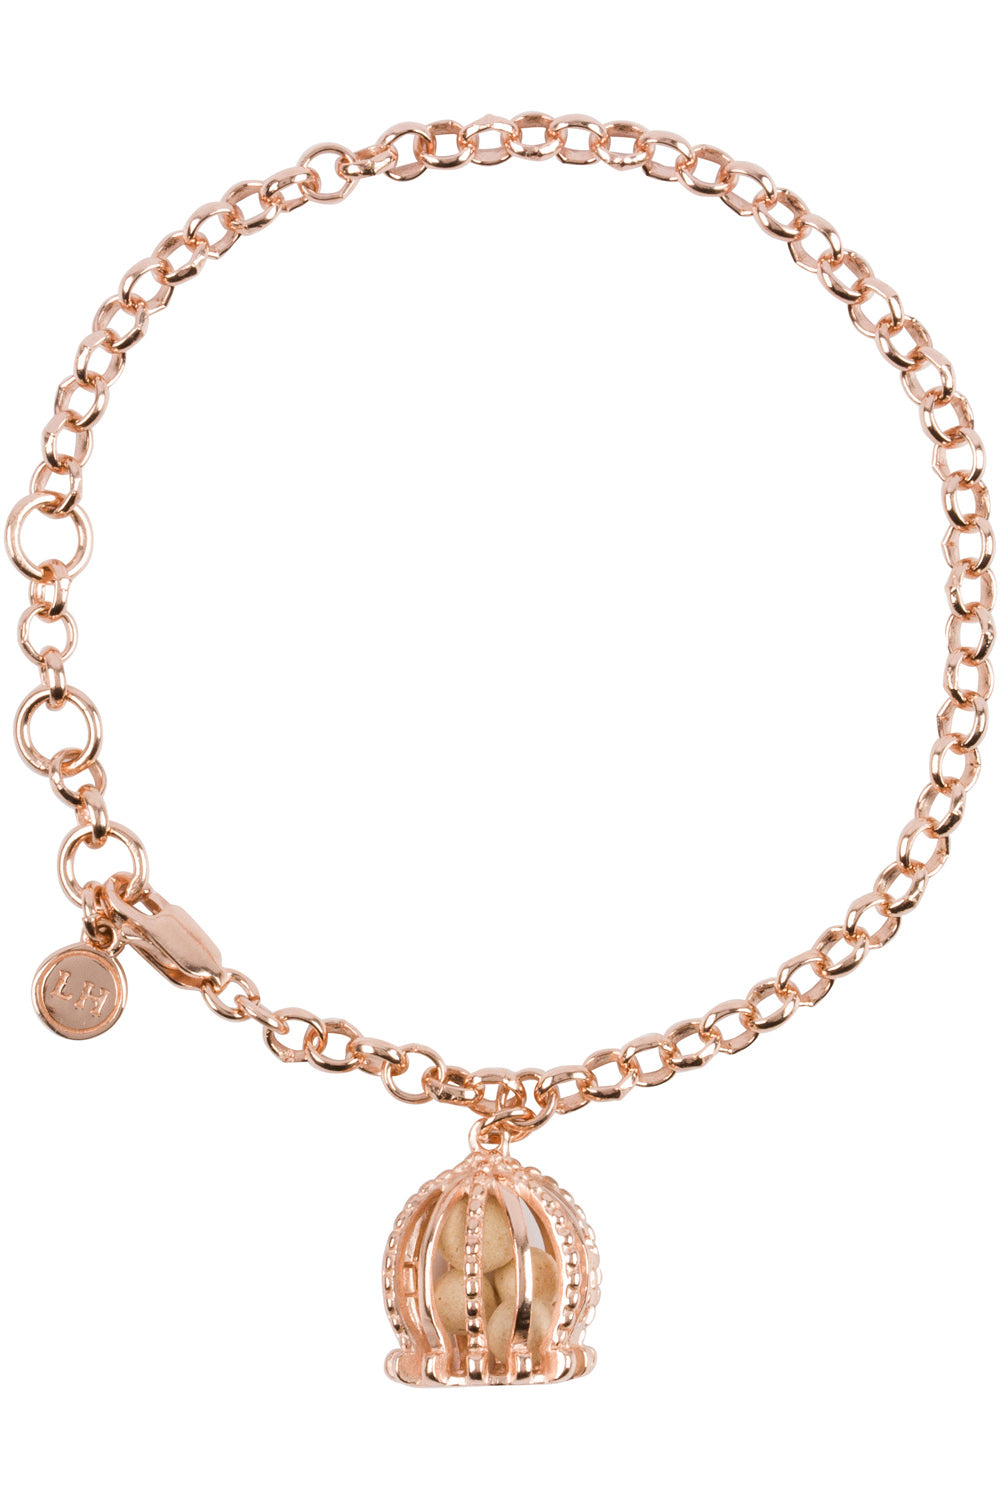 Imperial Charm Bracelet - Rose Gold